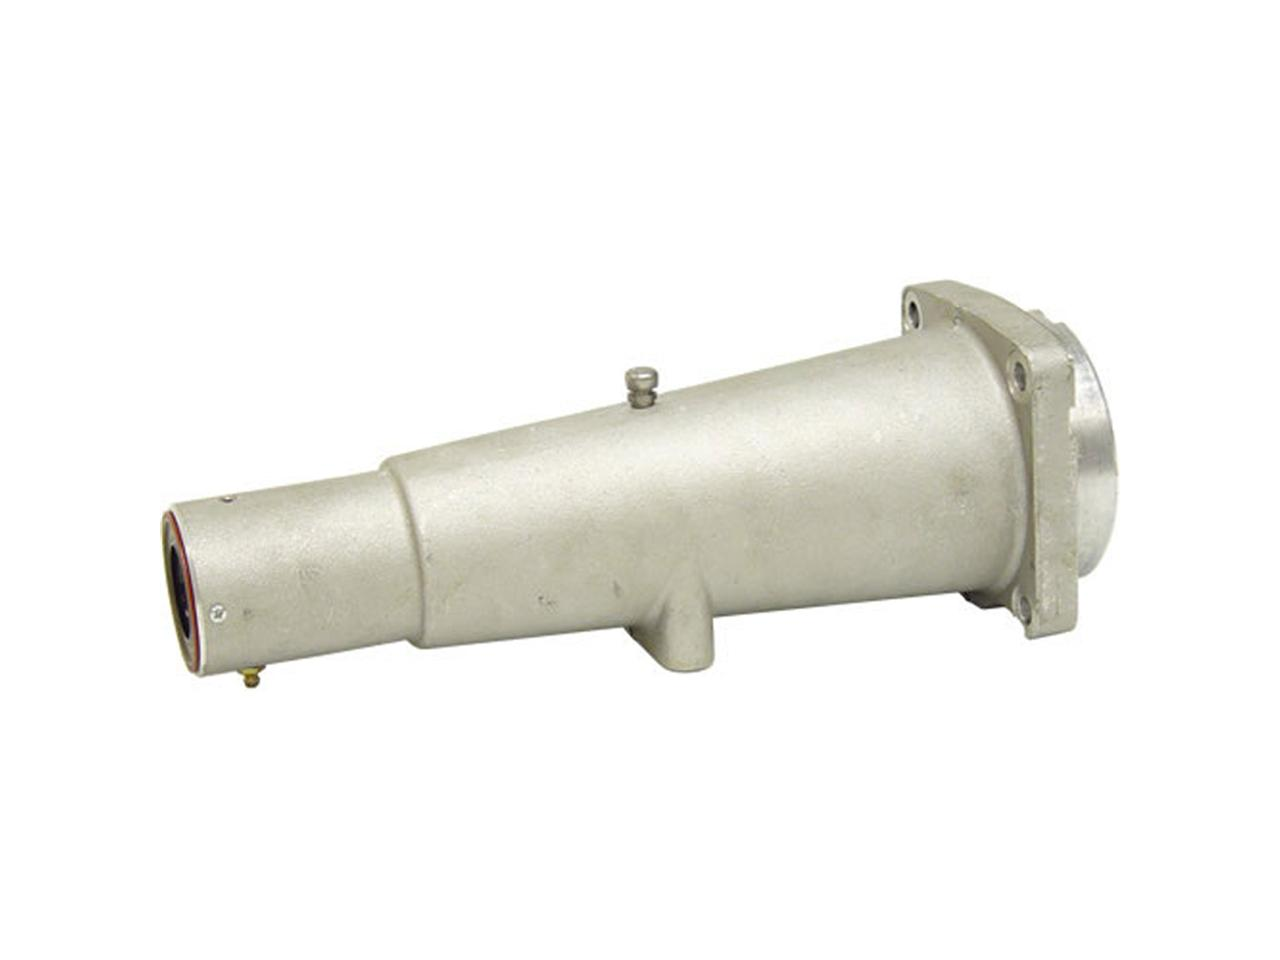 Picture of Brinn Tail Housing Assembly For Brinn 70001